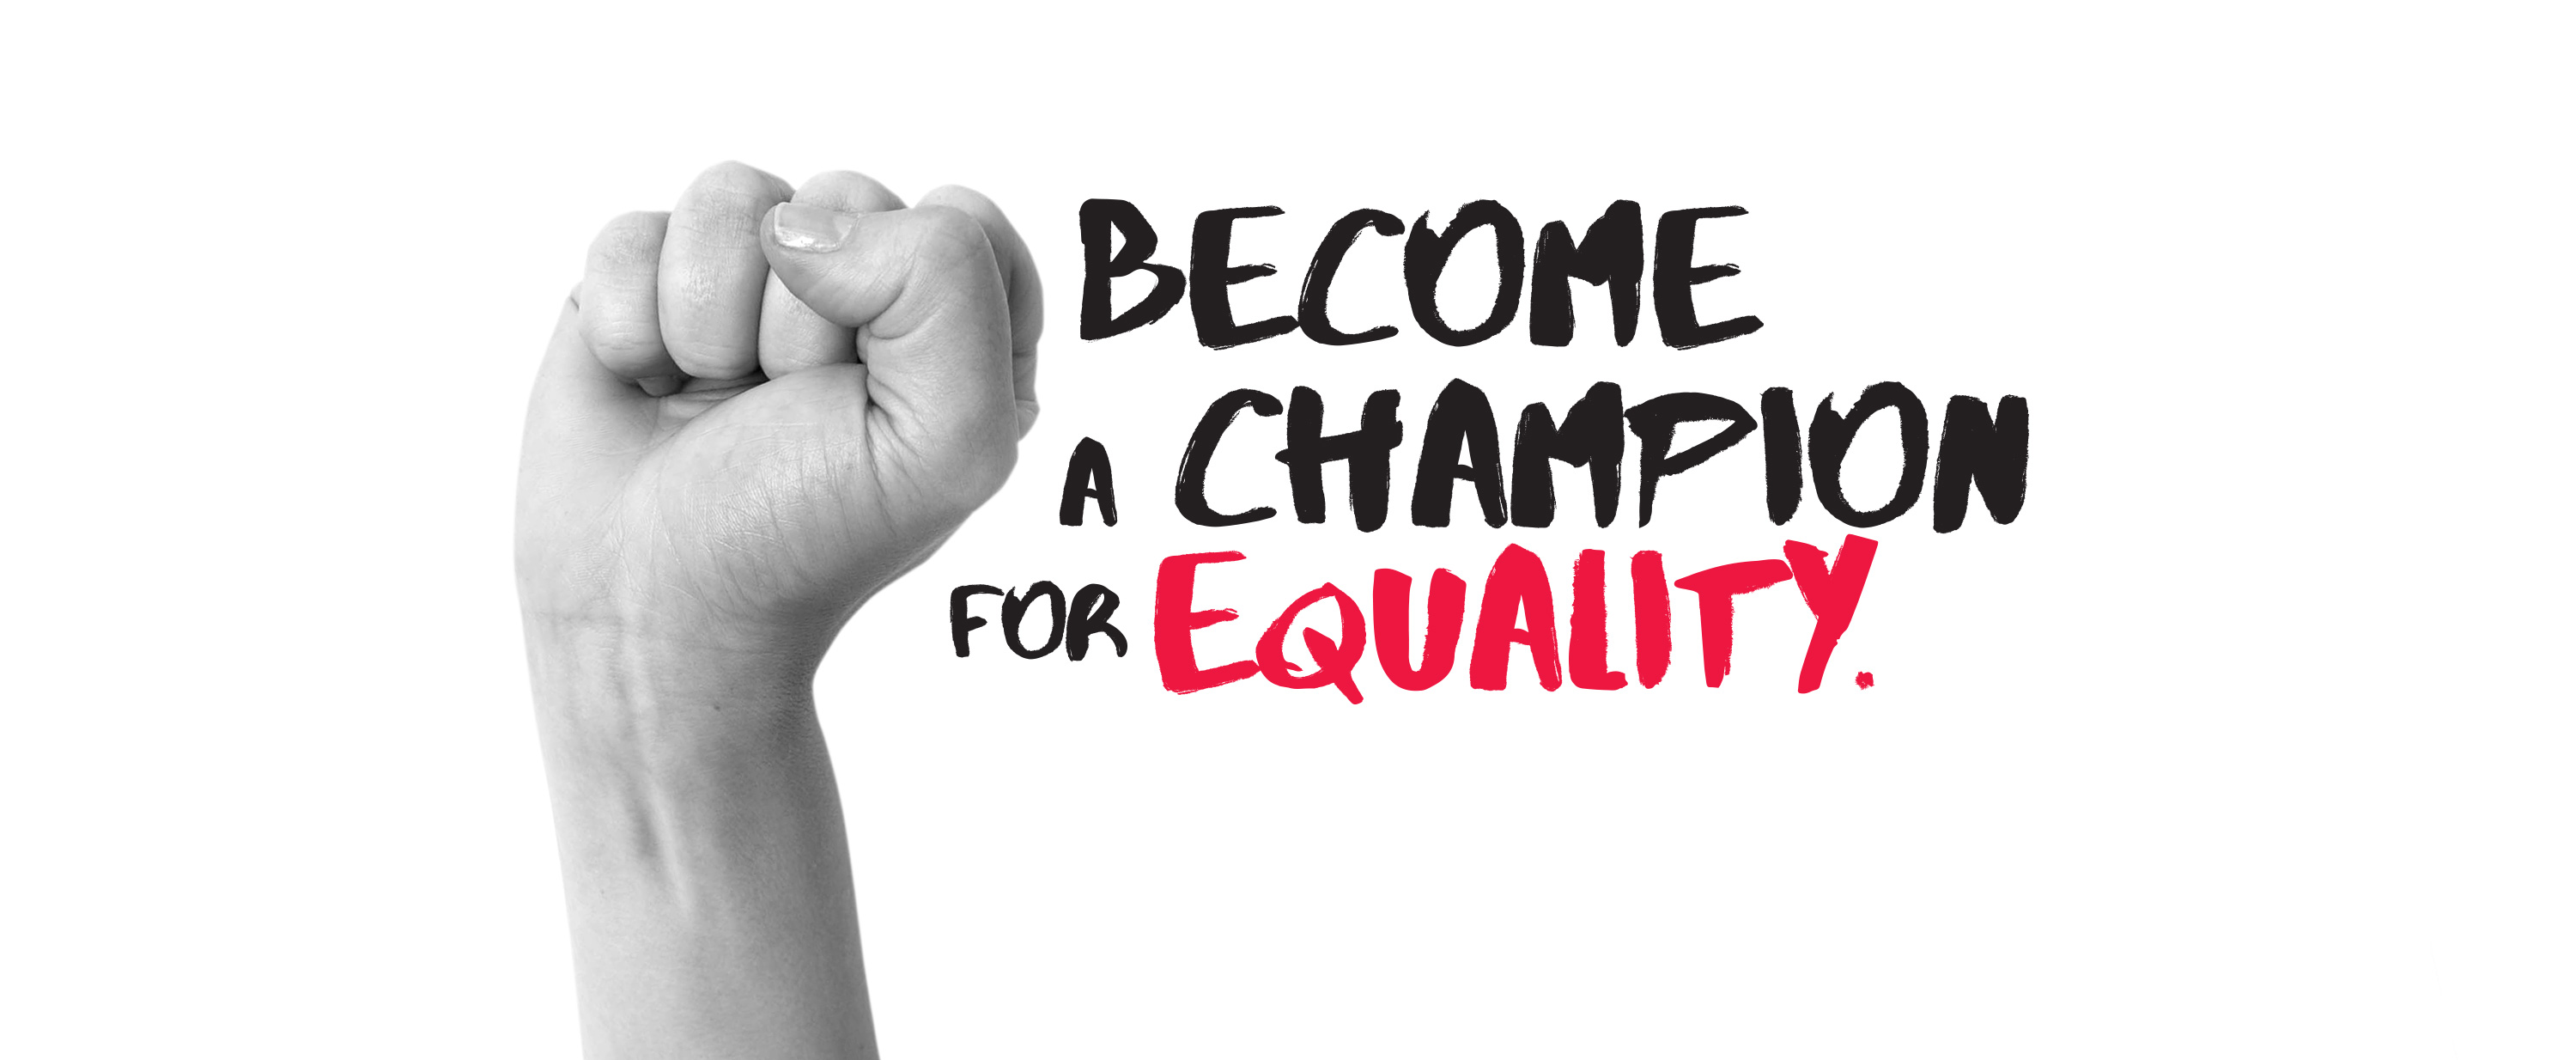 Become a champion for equality